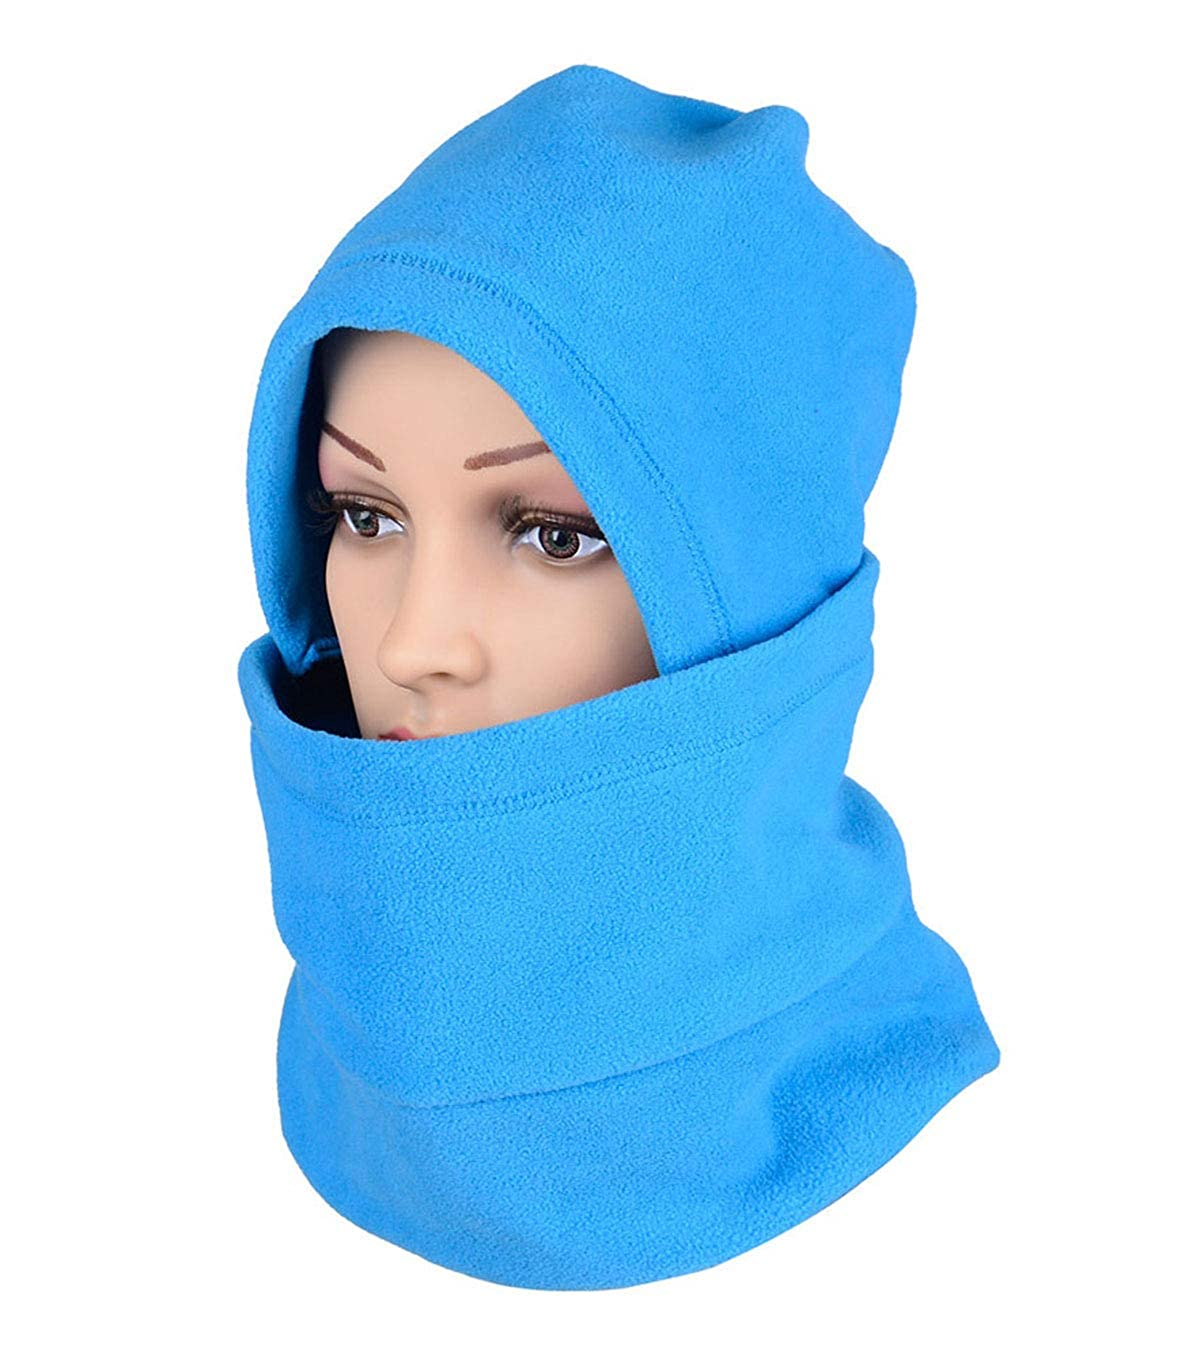 Letusport Fleece Balaclava Hooded Ski Face Mask Neck Warmer Gaiter for Winter Sports Detachable